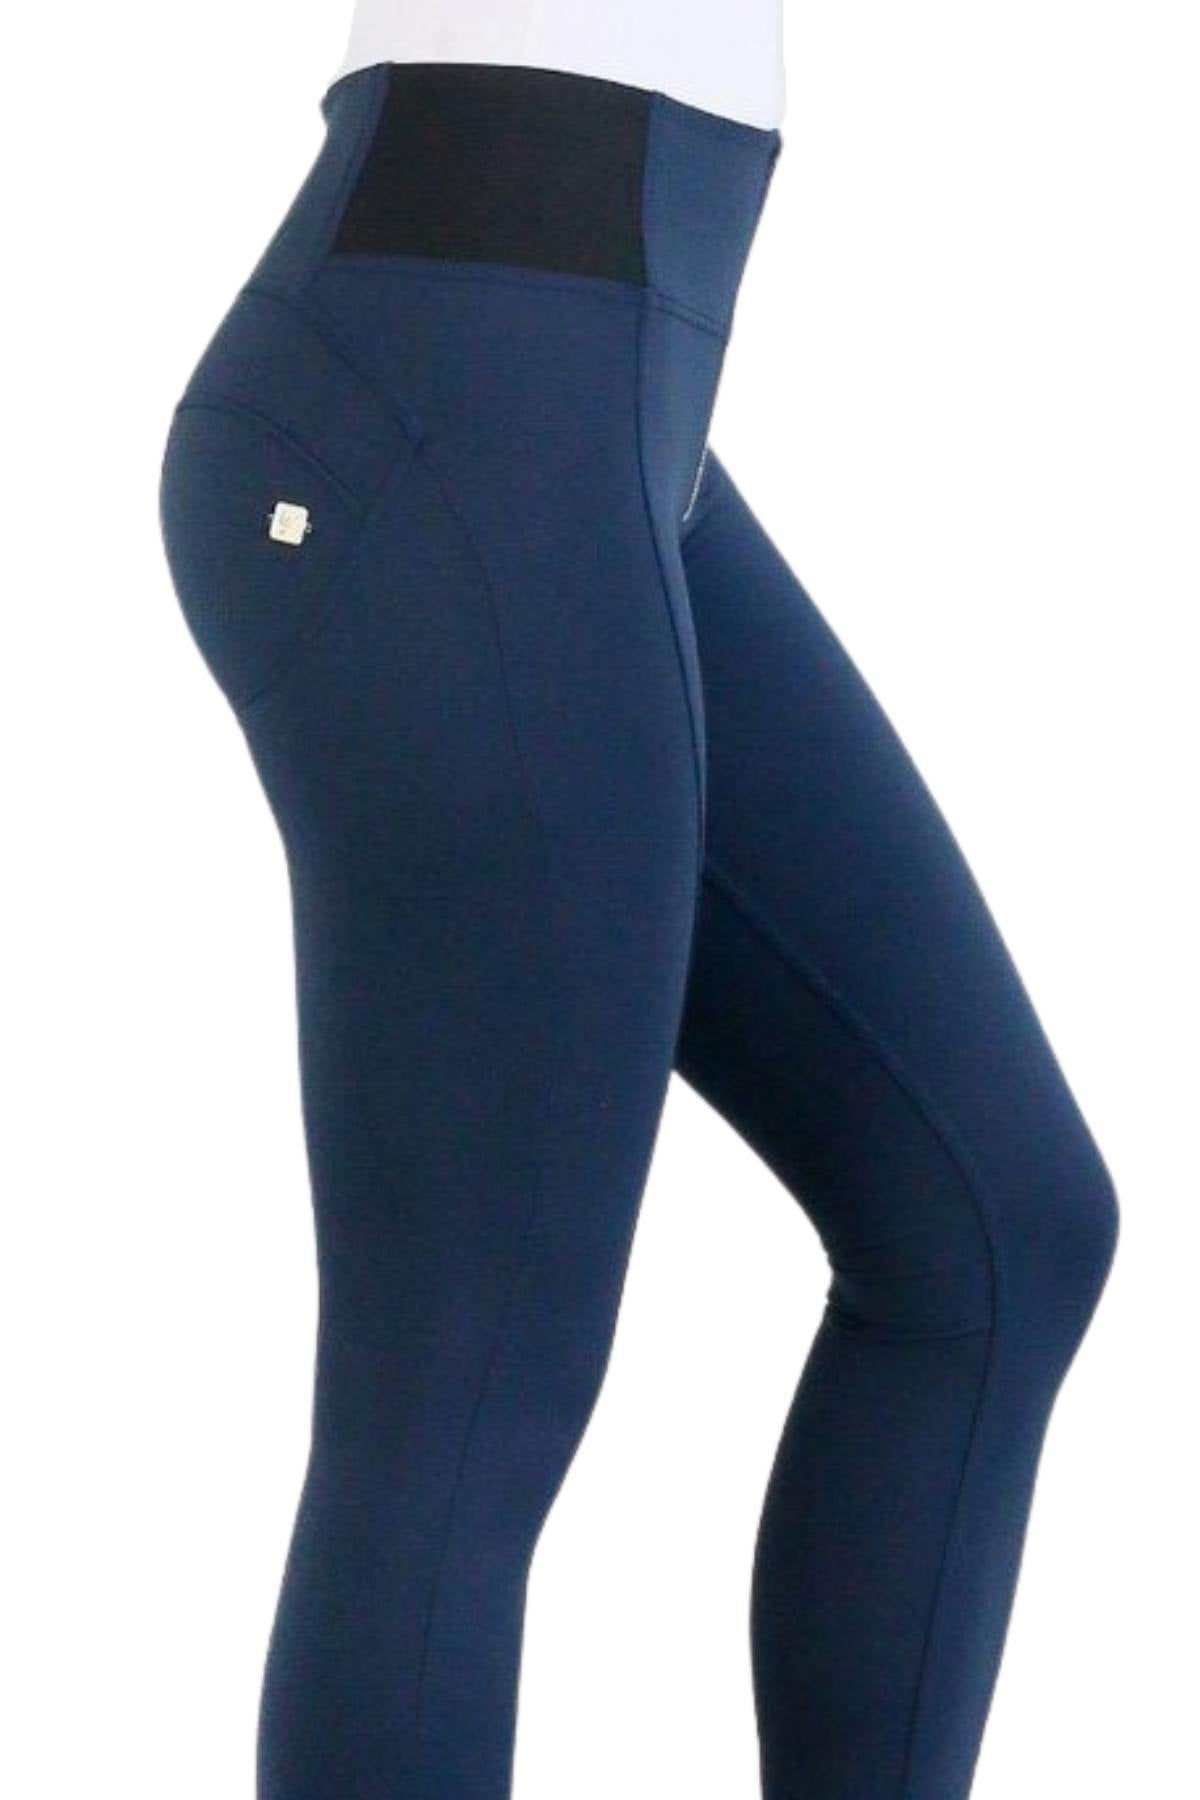 NAVY D.I.W.O.® PRO BEAUTY EFFECT WITH ELASTIC DETAIL HIGH WAIST